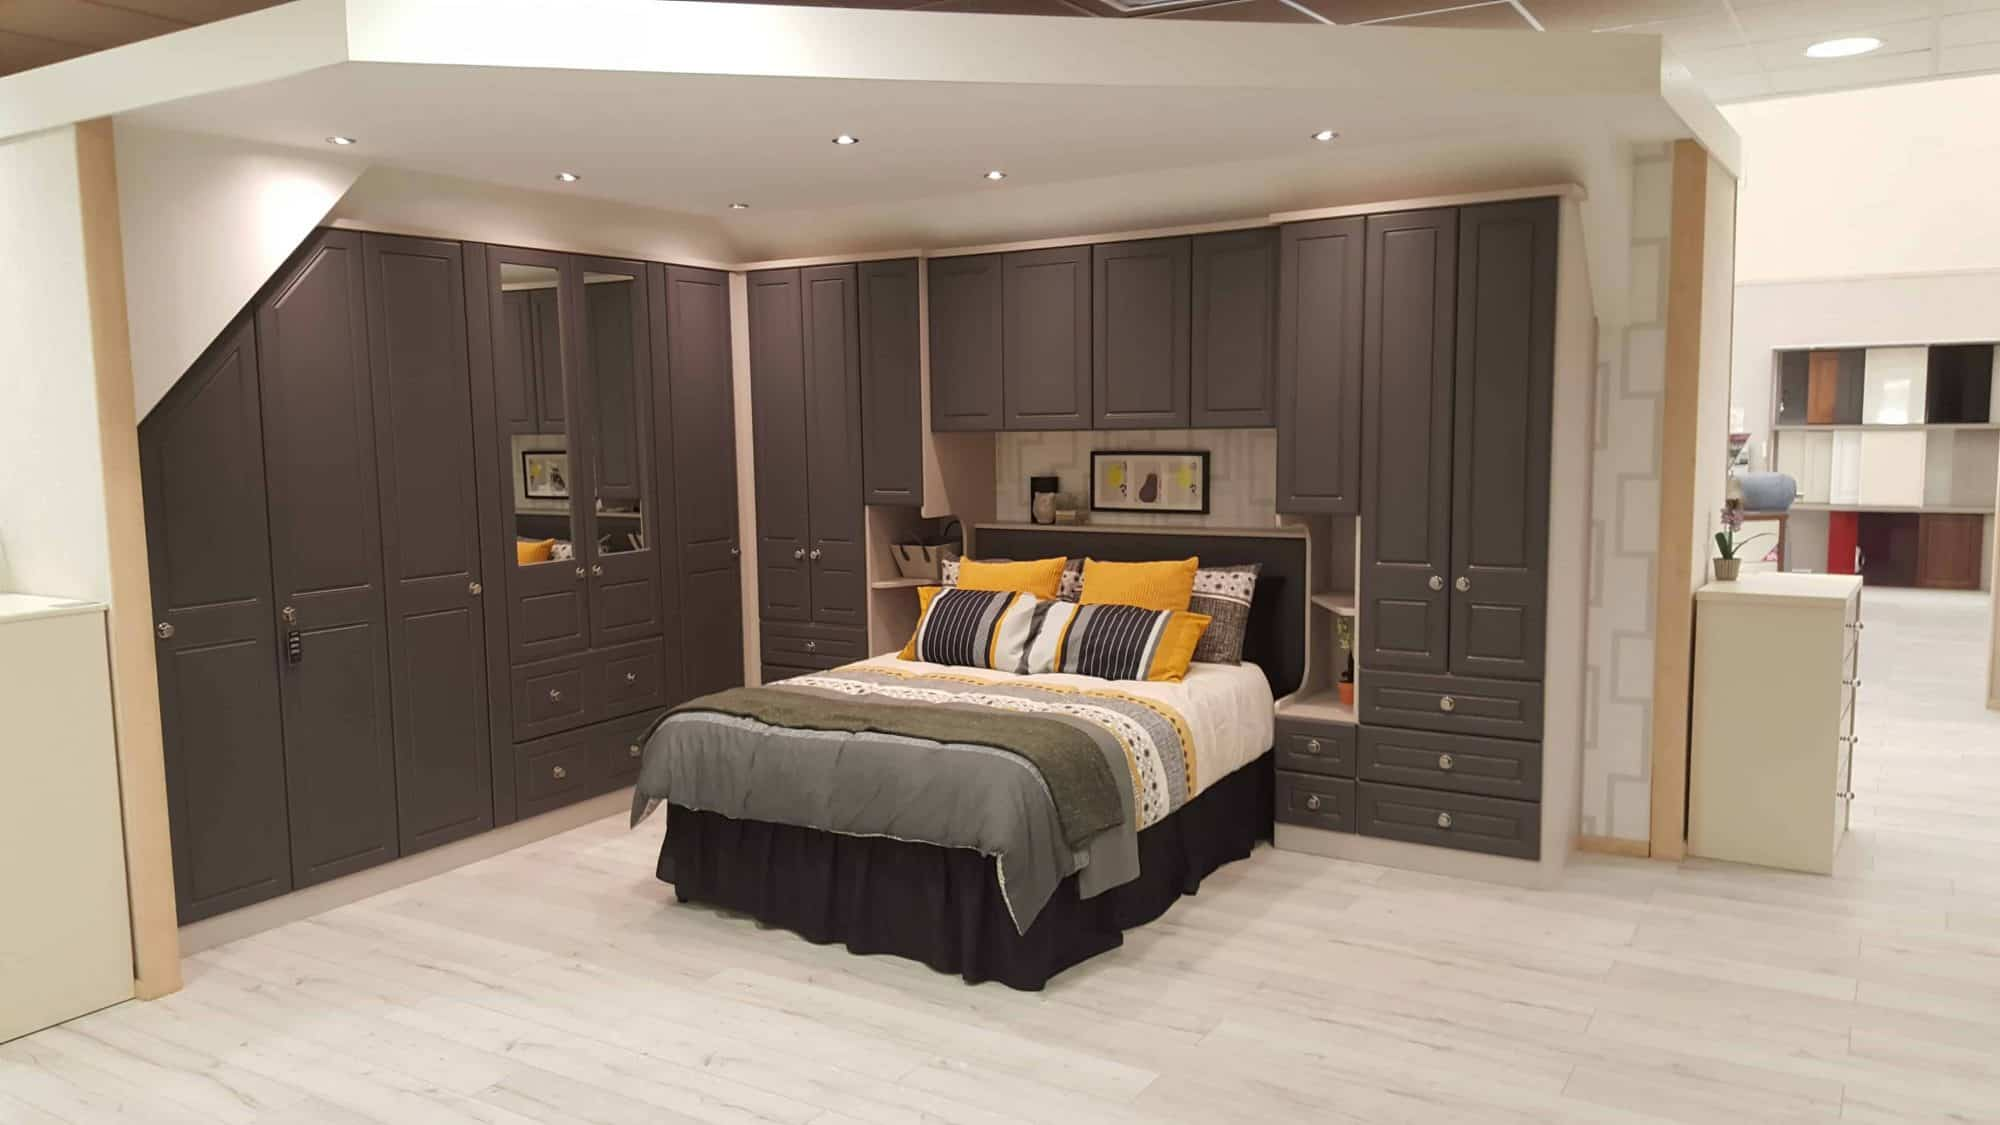 Add those finishing touches to make a fitted bedroom yours!